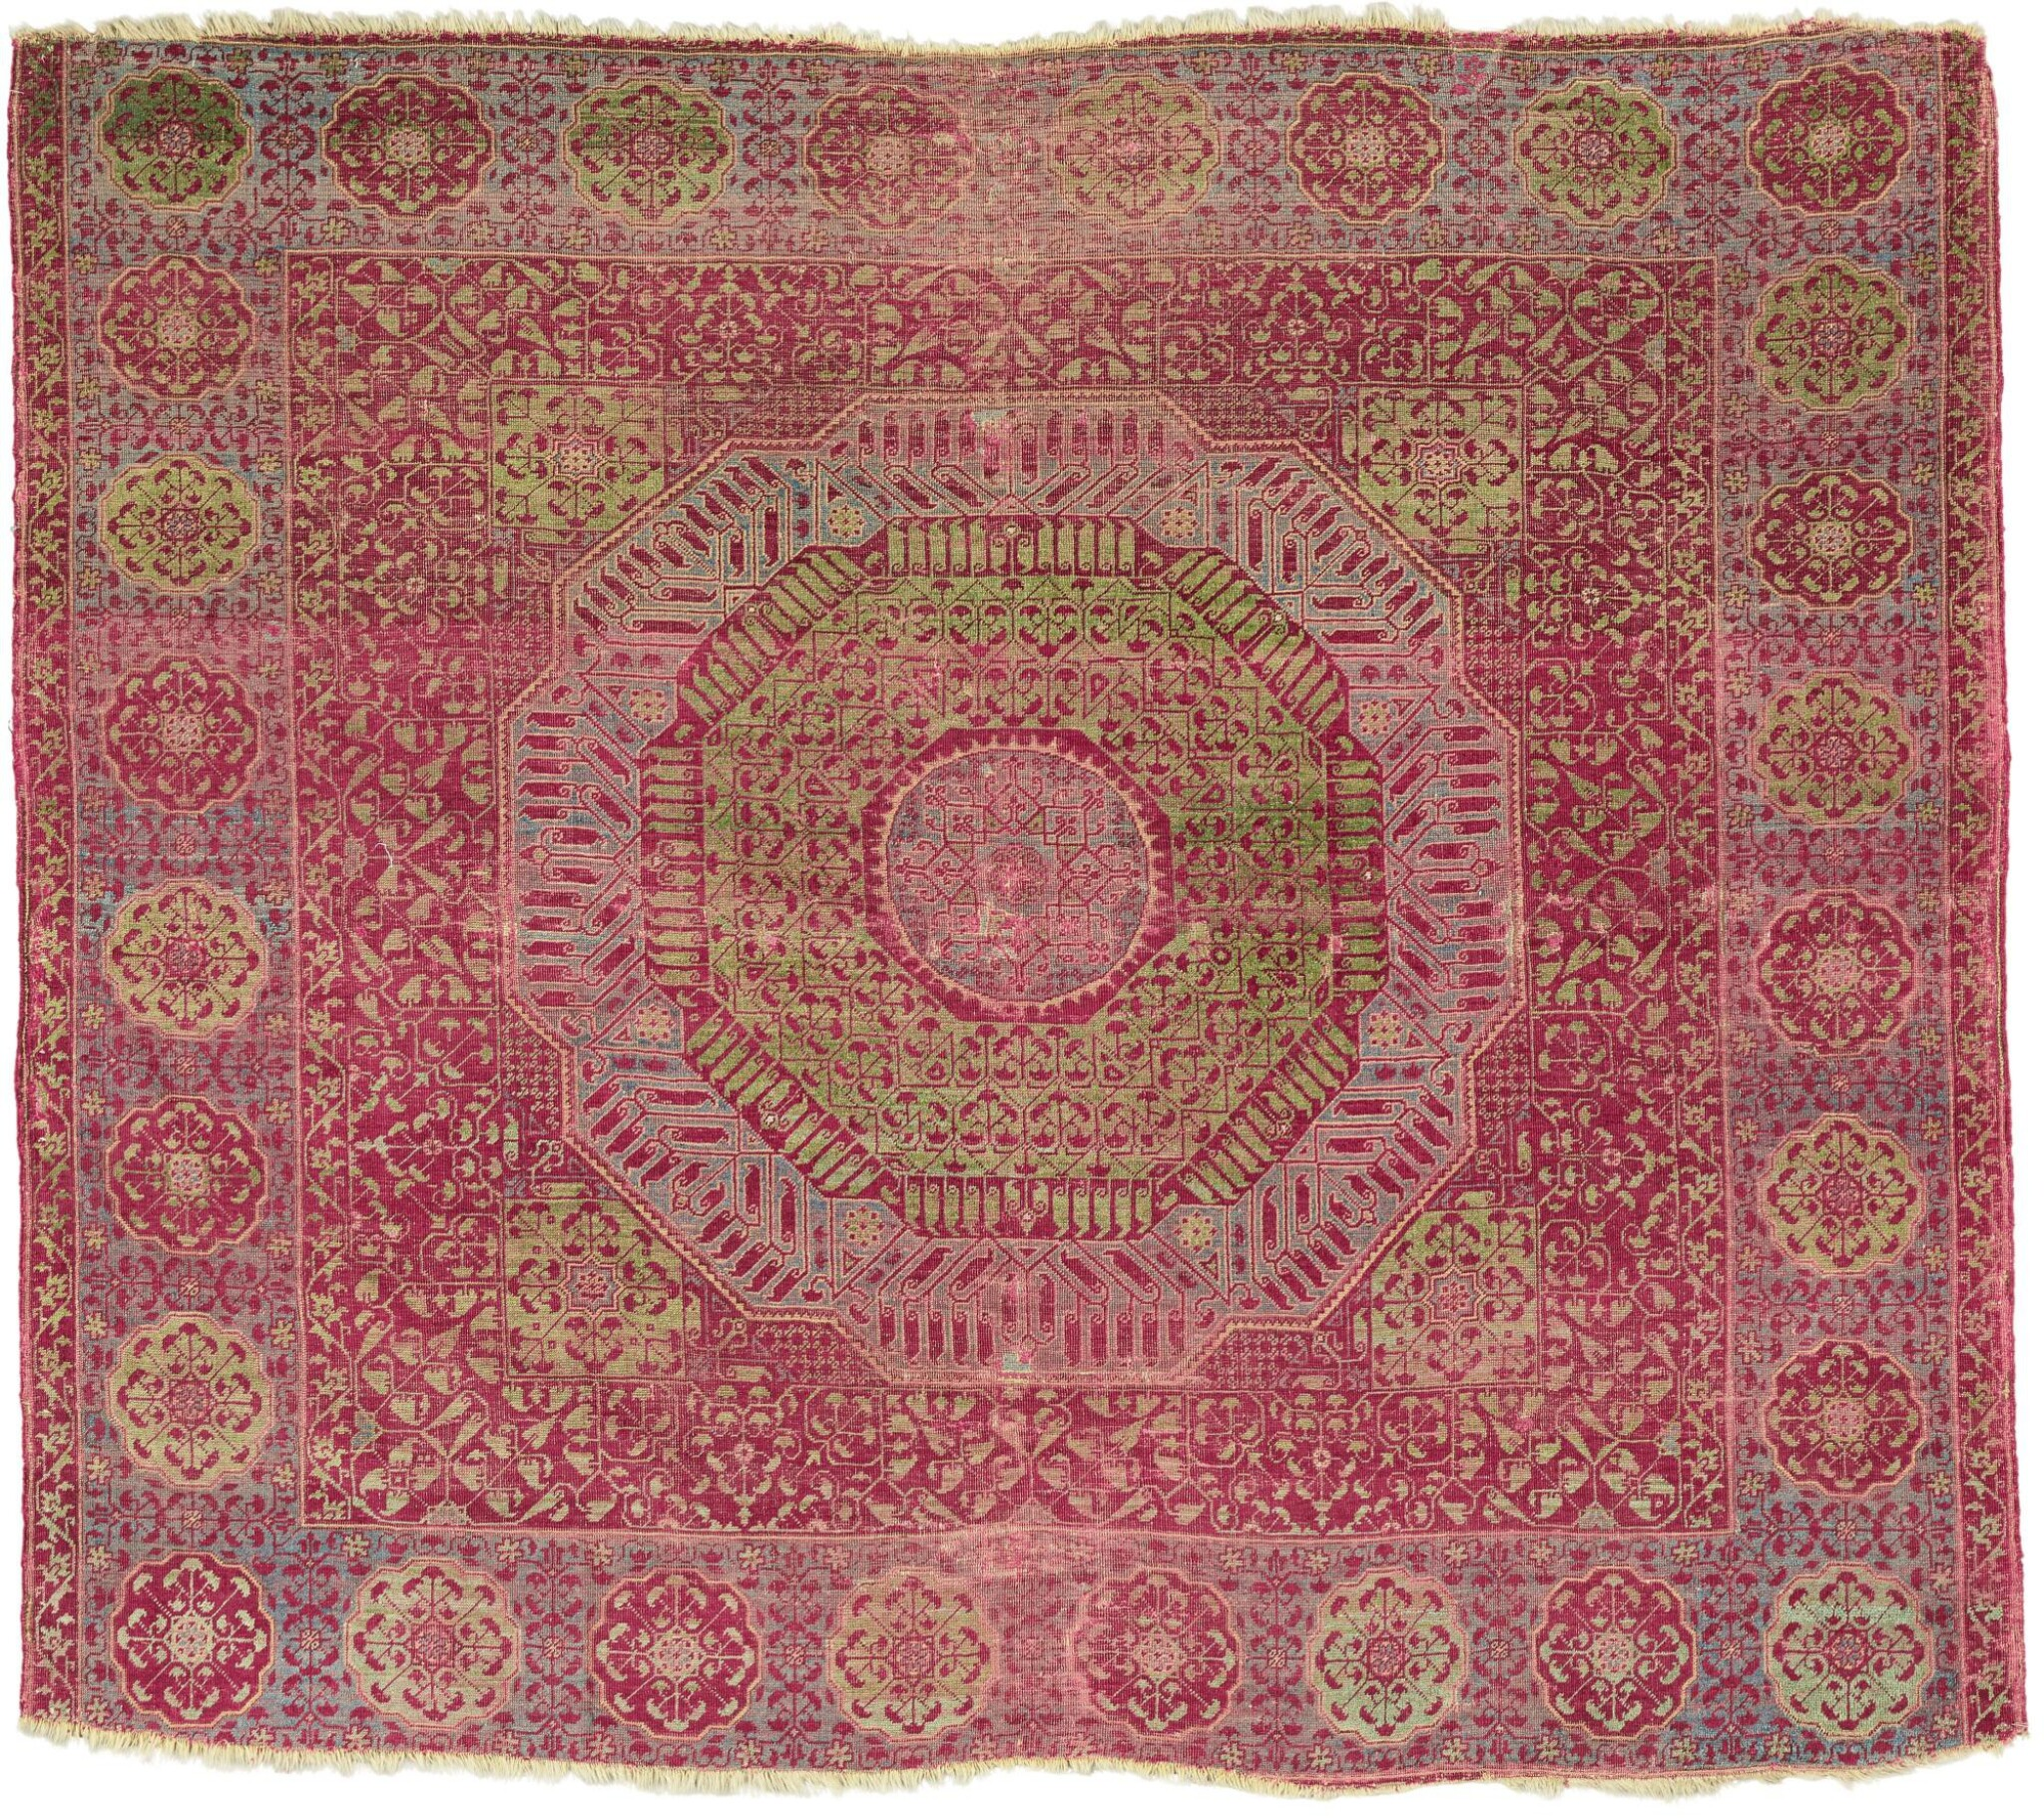 View full screen - View 1 of Lot 448. A MAMLUK CARPET, EGYPT, PROBABLY CAIRO, SECOND HALF 15TH CENTURY OR EARLY 16TH CENTURY.